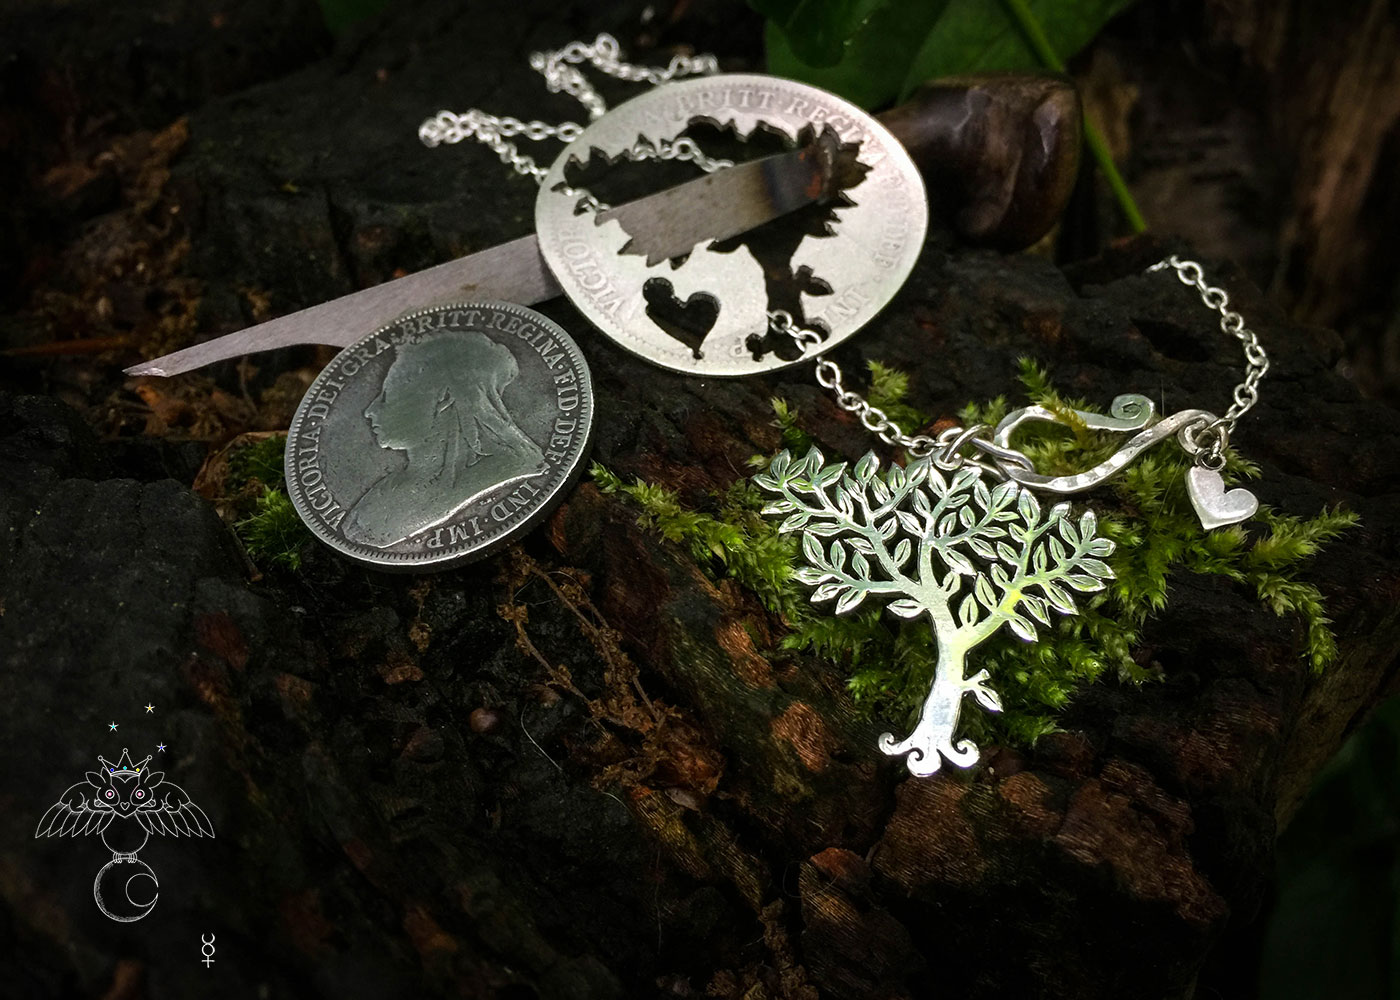 Handcrafted and recycled silver coin Elder tree necklace